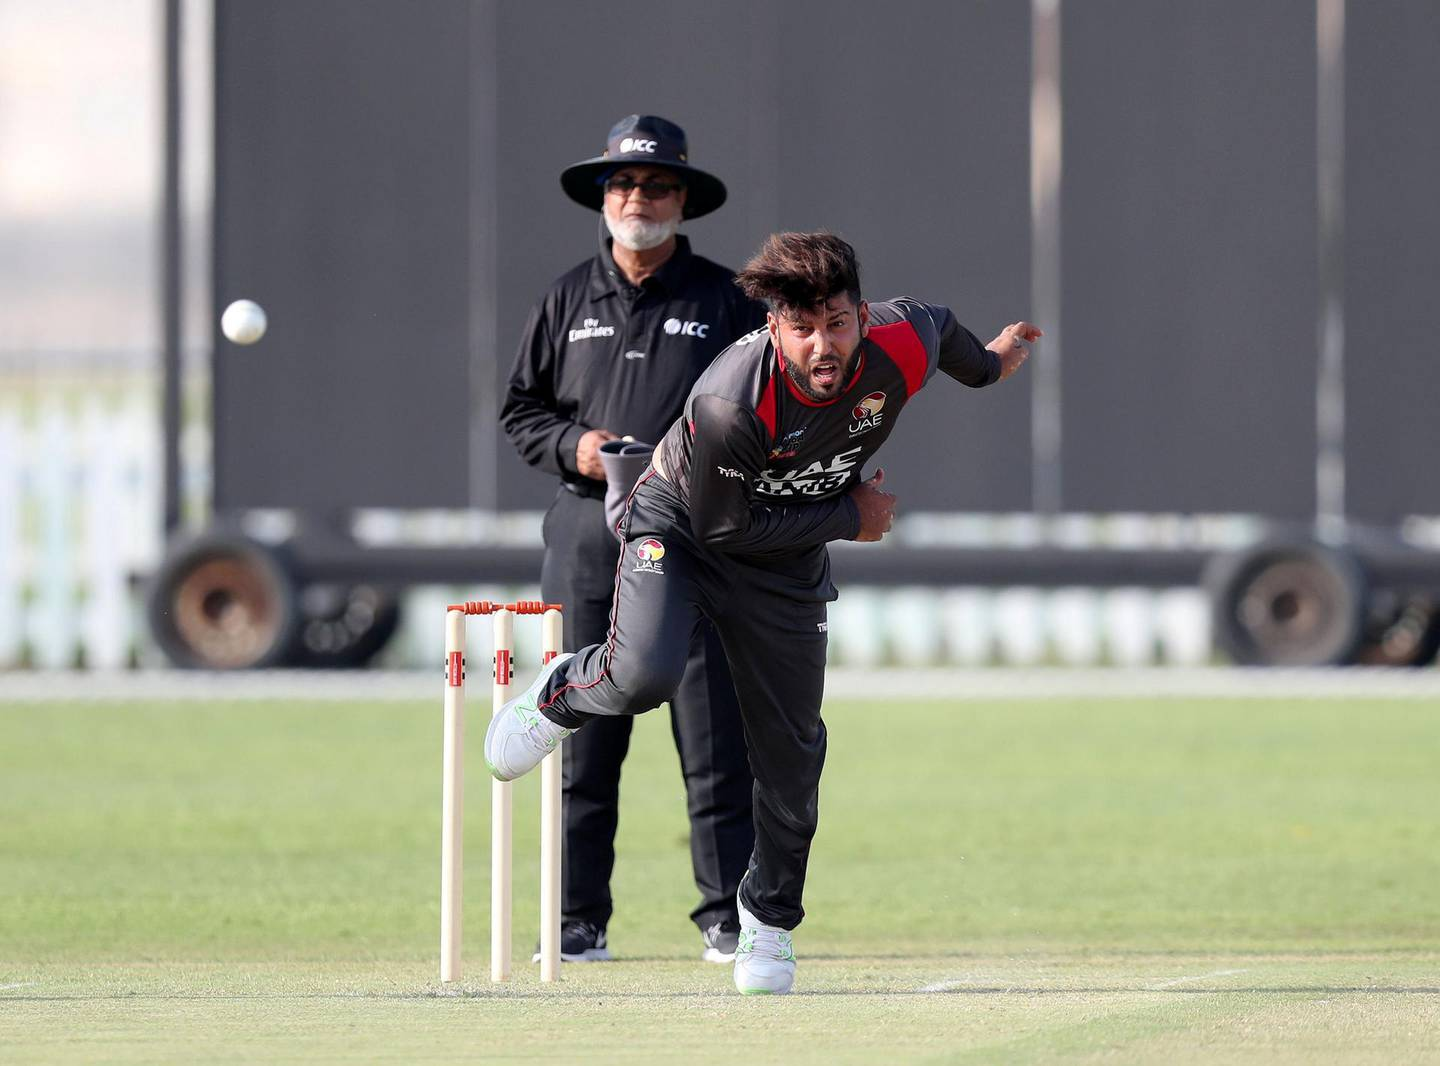 Abu Dhabi, United Arab Emirates - October 22, 2018: Mohammad Naveed of the UAE bowls in the match between the UAE and Australia in a T20 international. Monday, October 22nd, 2018 at Zayed cricket stadium oval, Abu Dhabi. Chris Whiteoak / The National